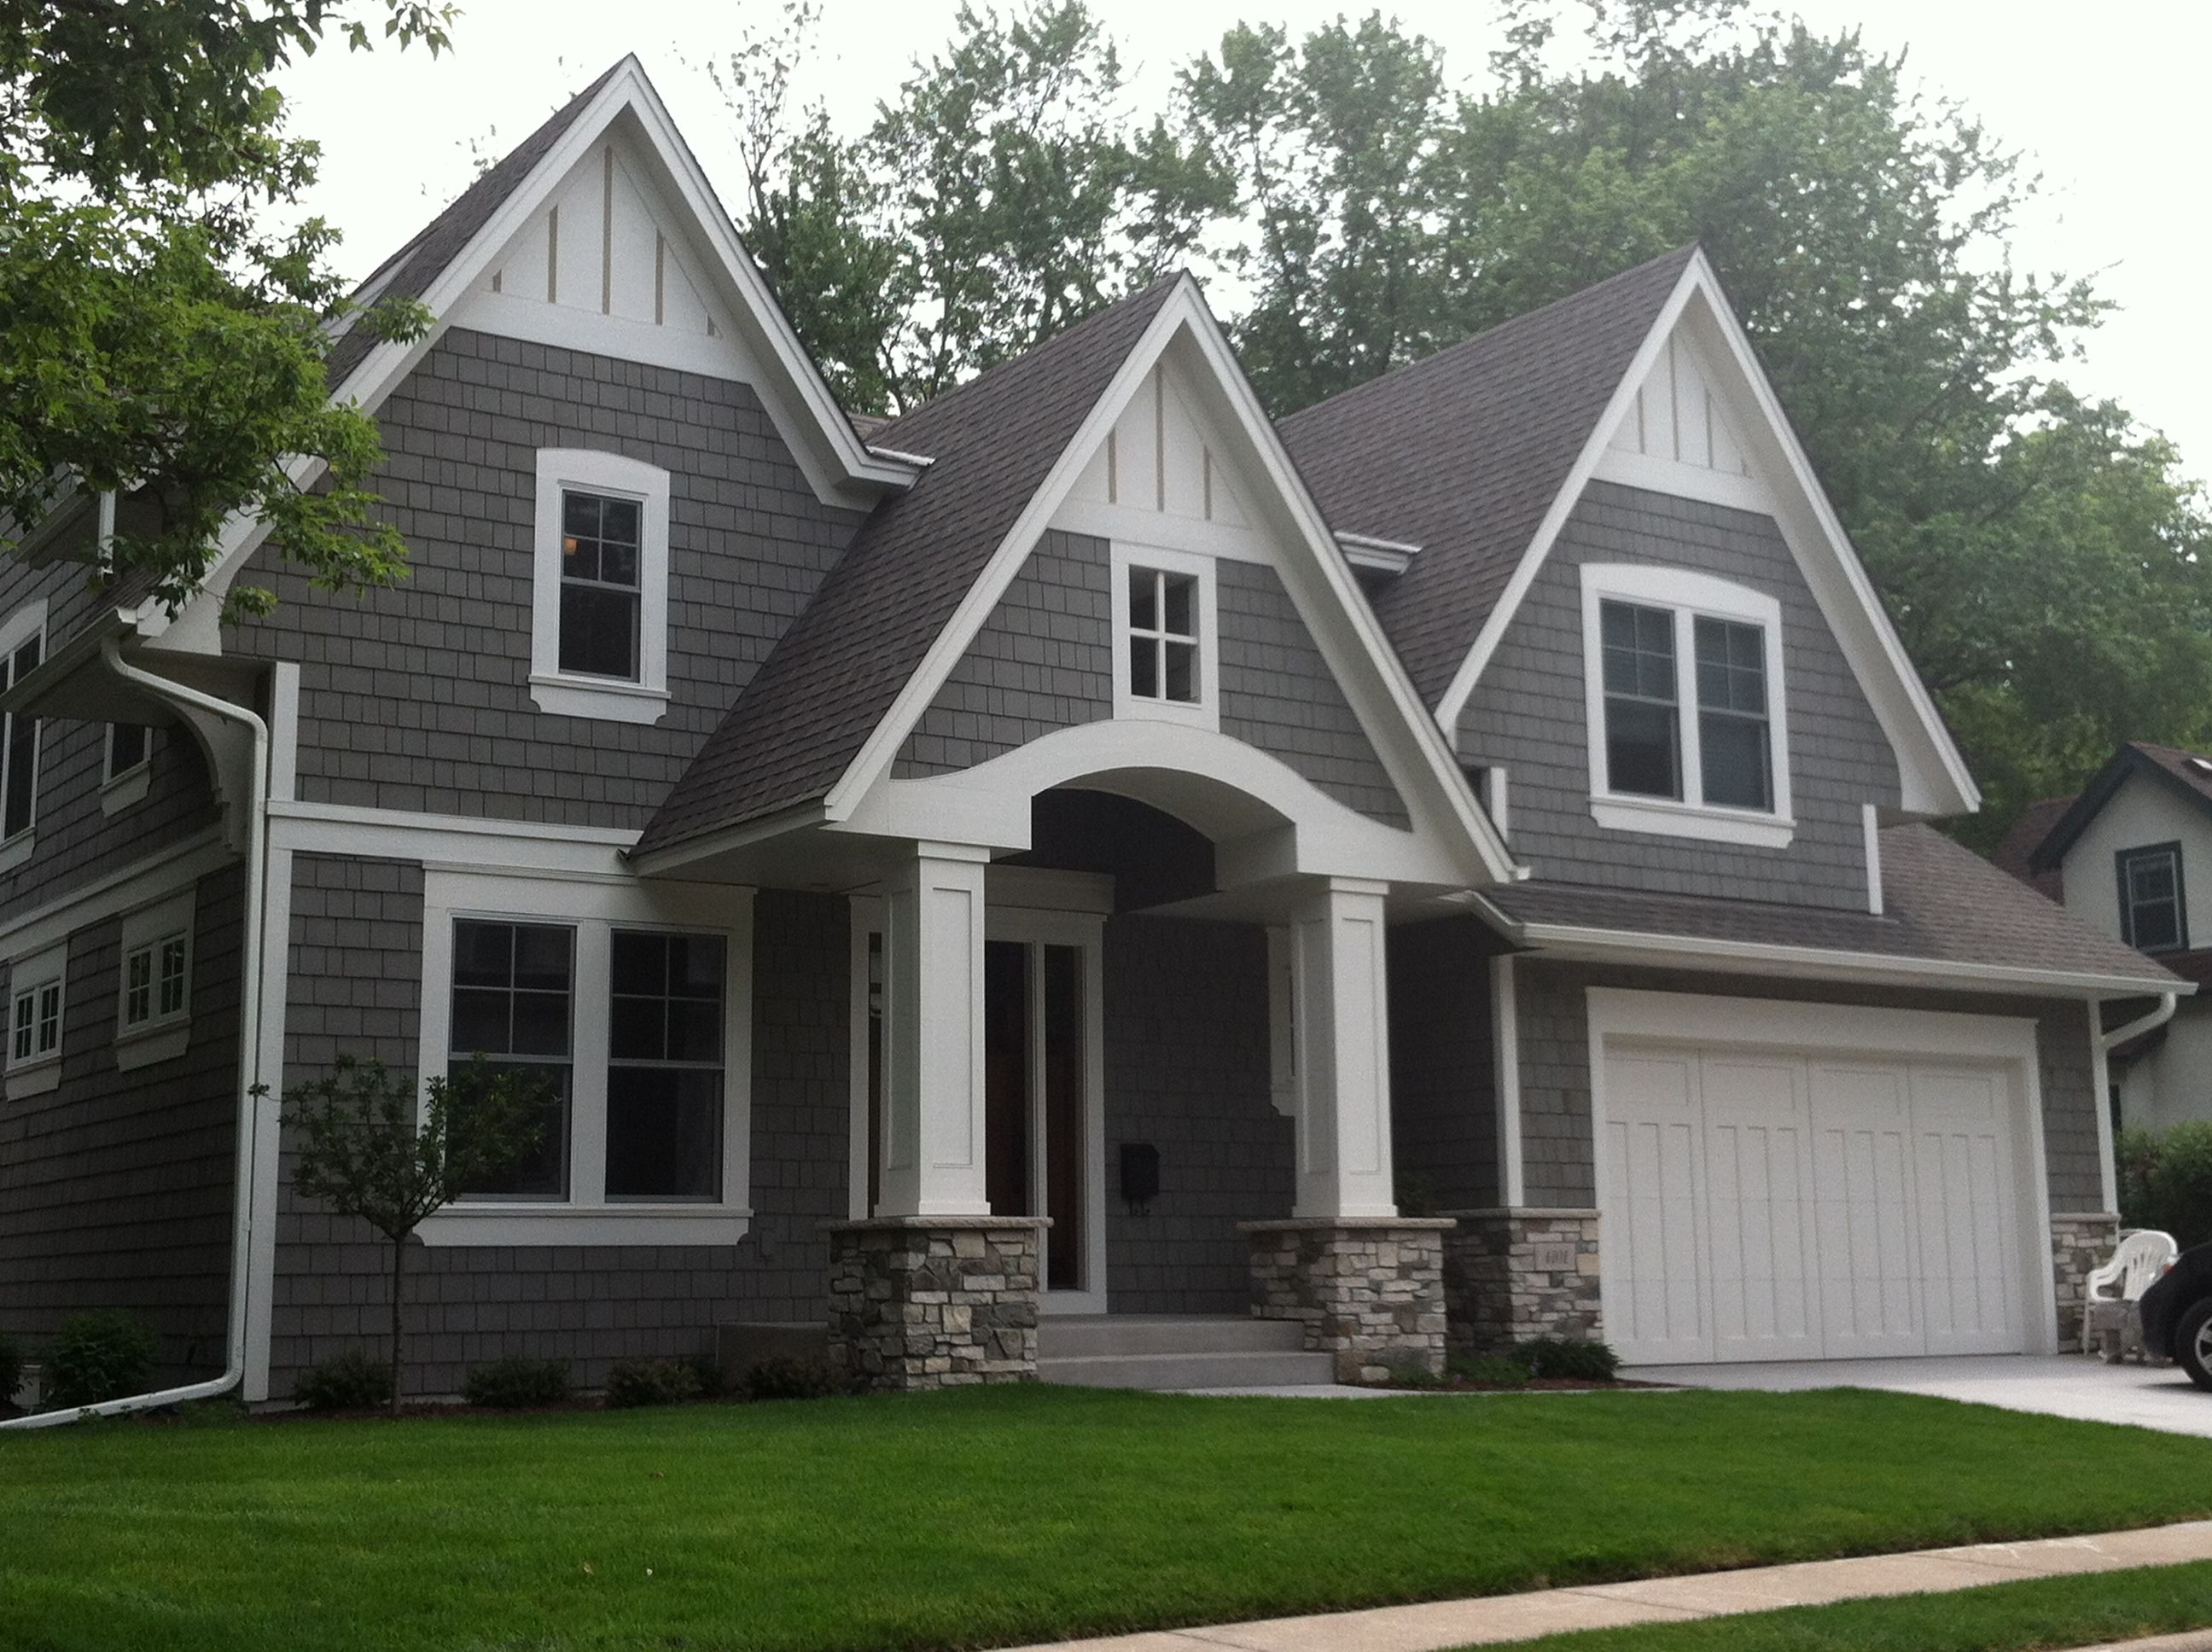 Exterior house color schemes barrier exteriors minnesota for Exterior house color palette ideas